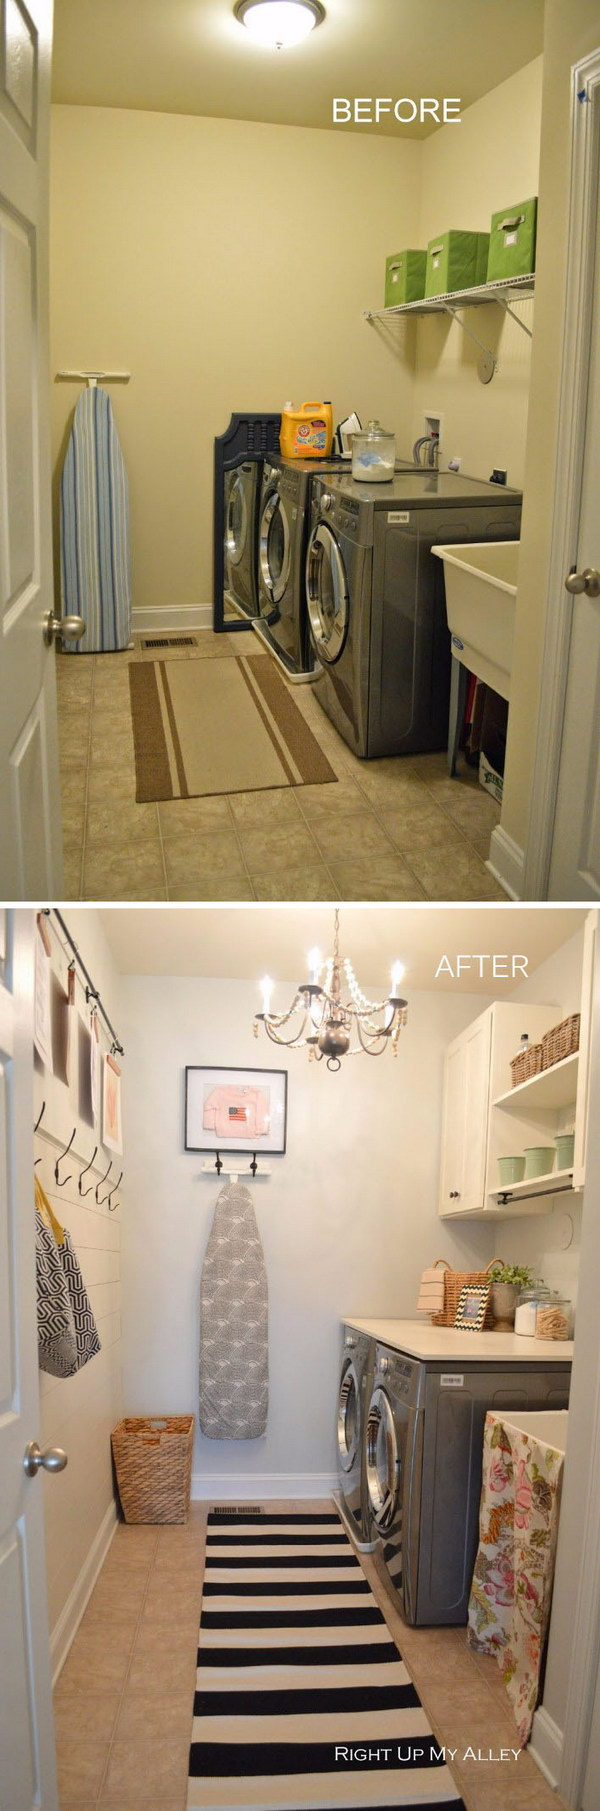 7 Small Space Makeovers: Awesome Before And After Laundry Room Makeovers